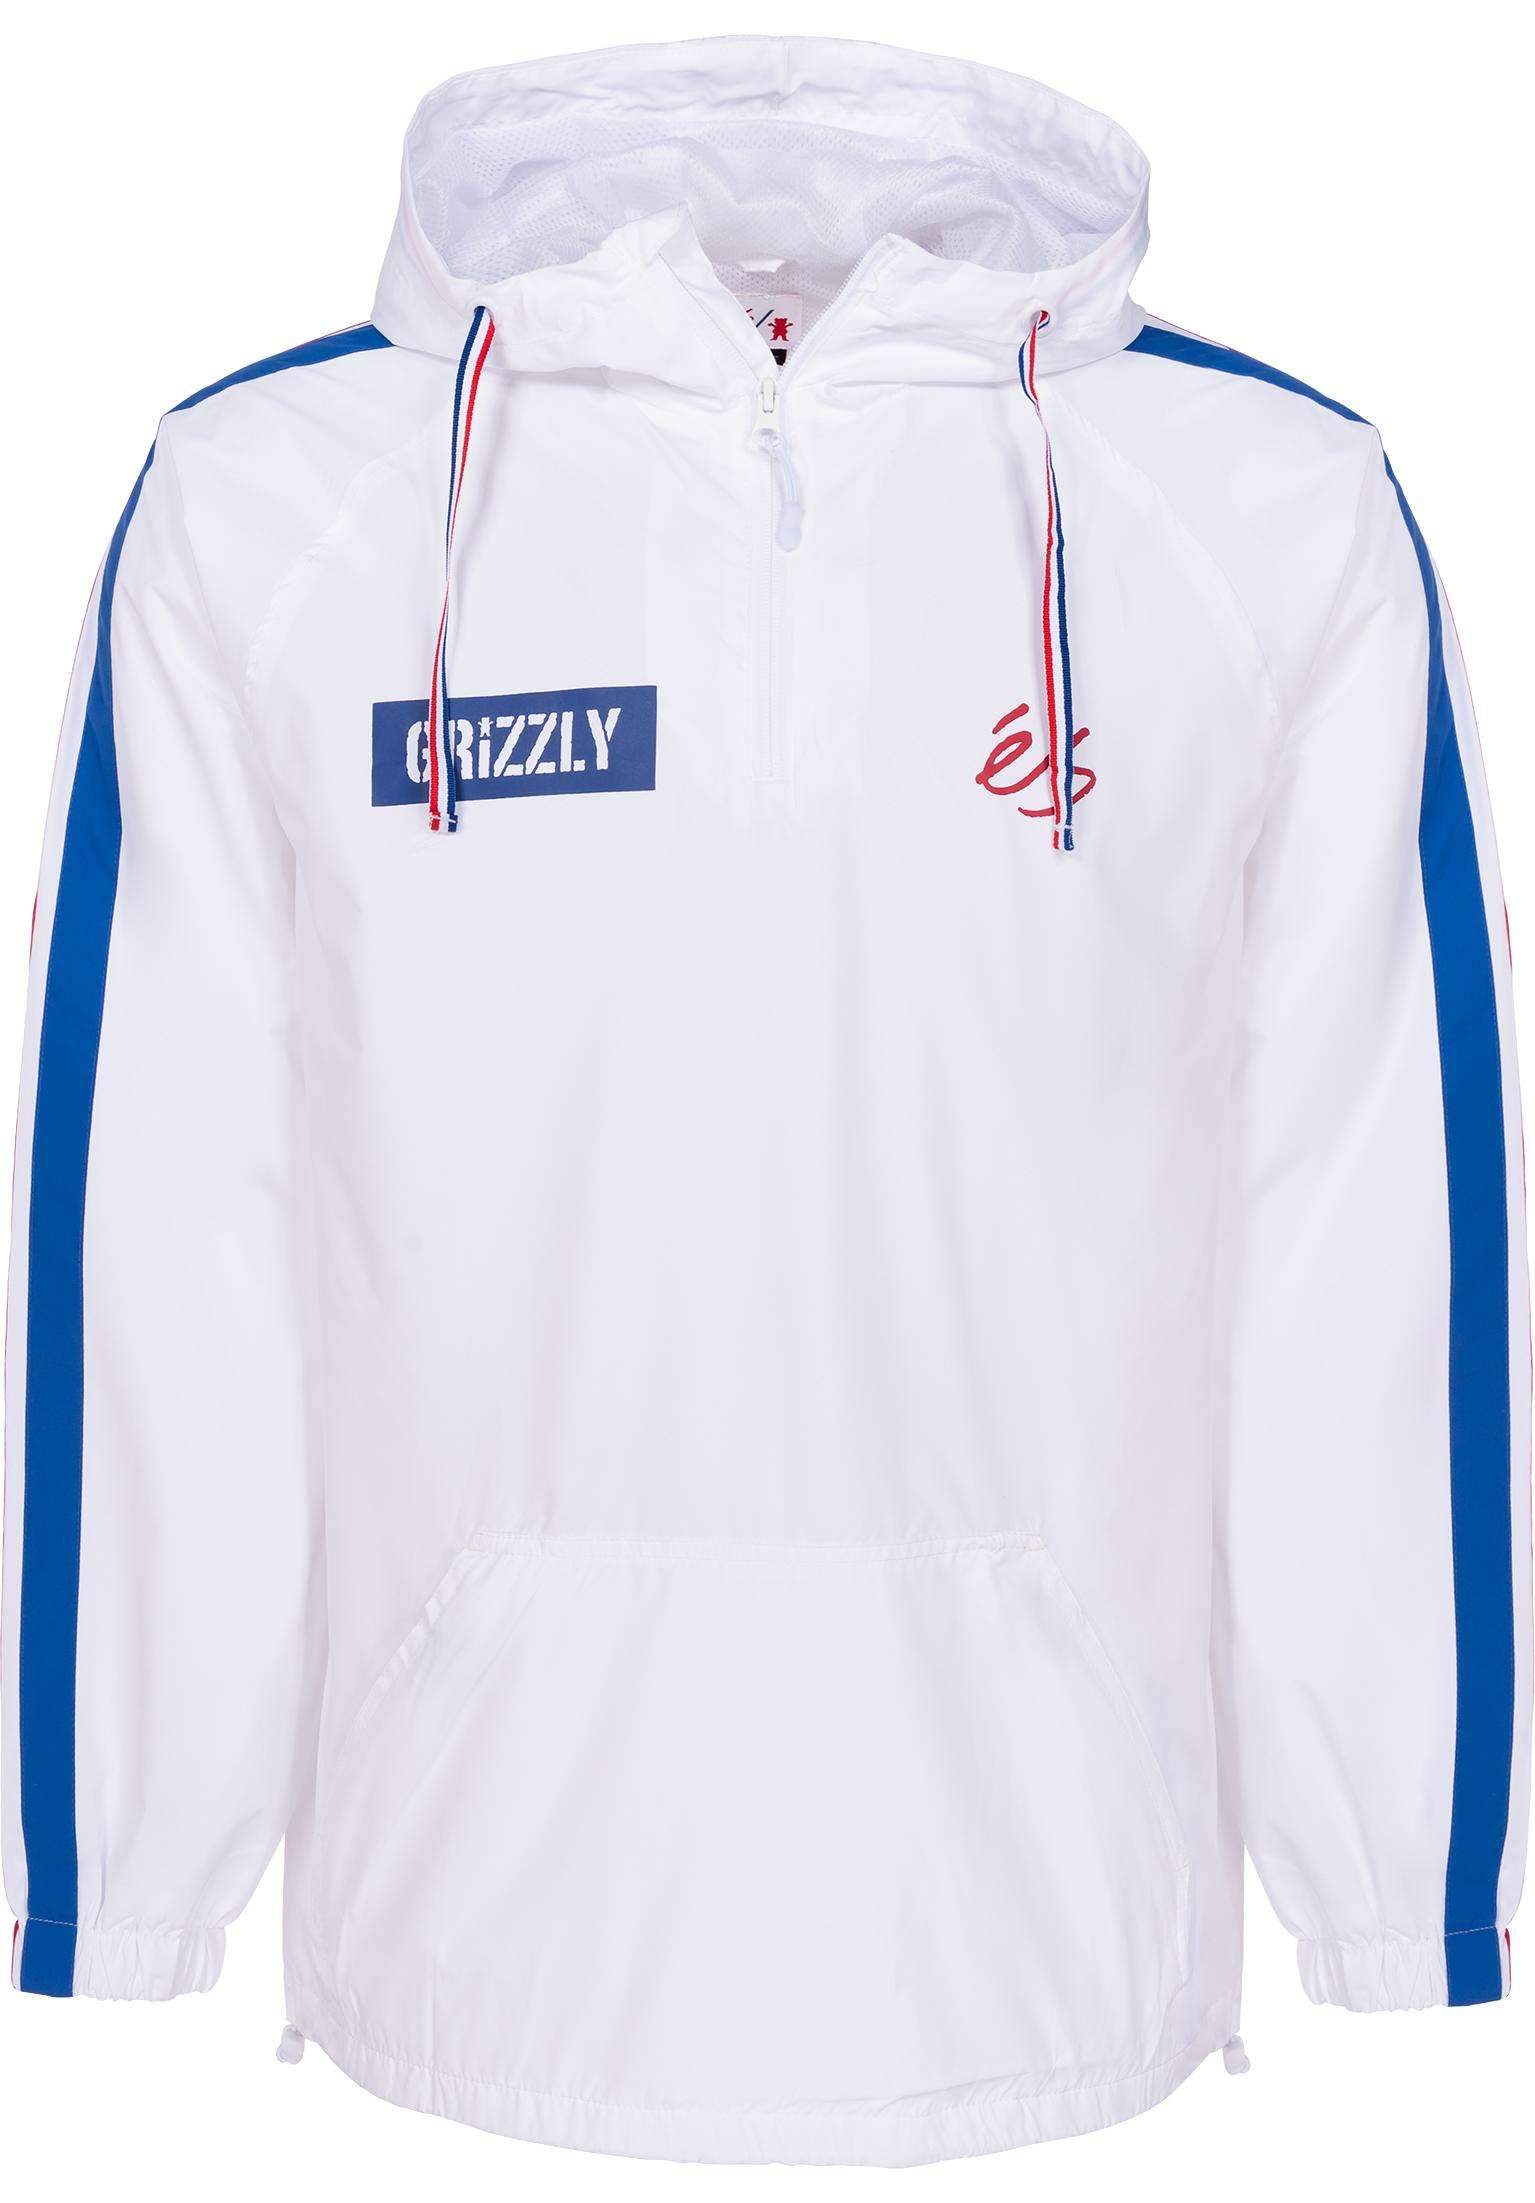 Match Anorak Es Grizzly Windbreaker X White Yw56EWq